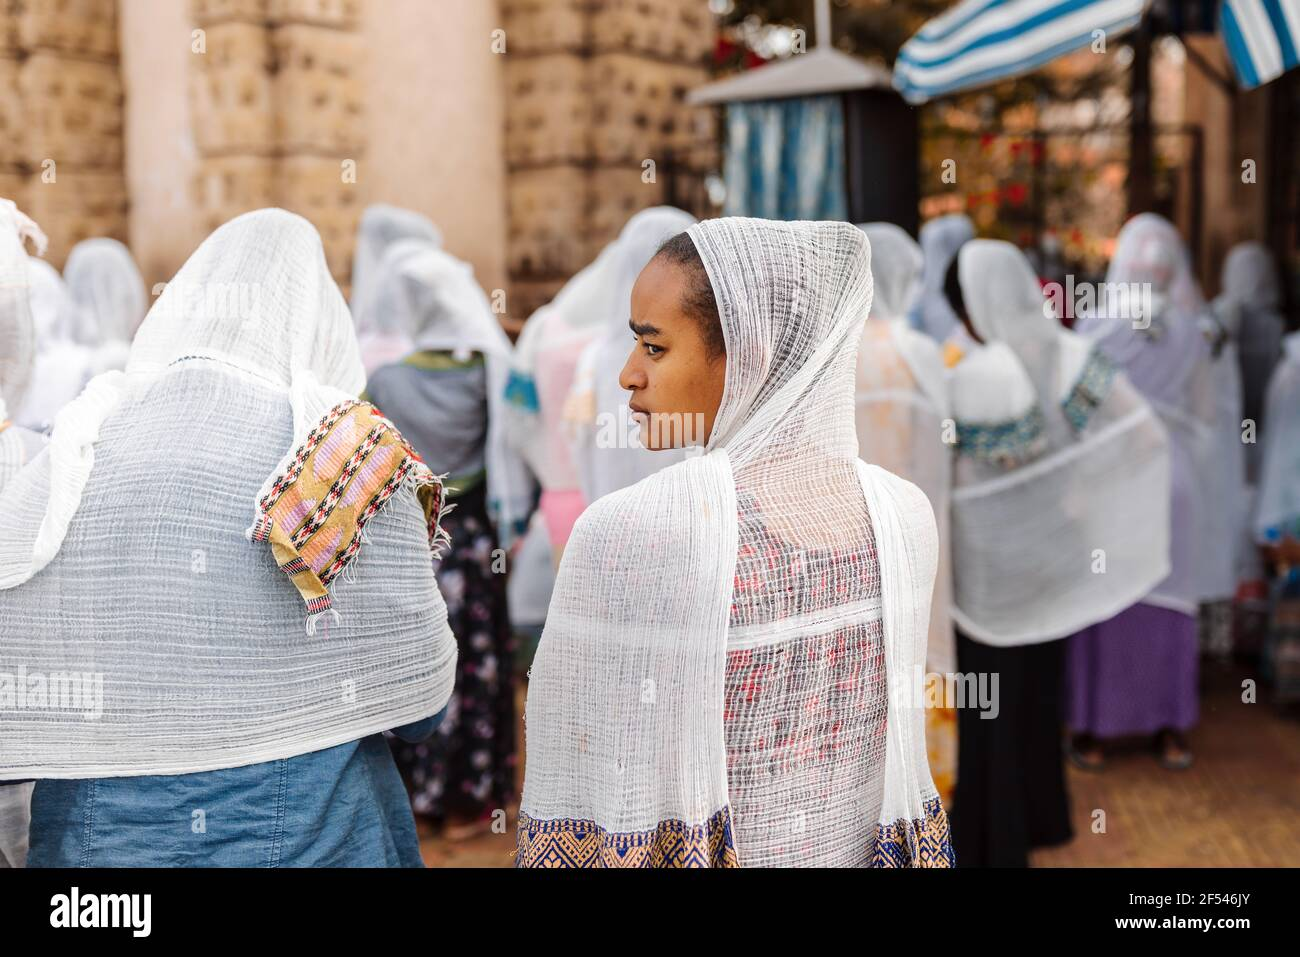 Azezo, Amhara Region, Ethiopia - April 21, 2019: Orthodox Christian people white dressed walk to mass on the street during easter holiday. Bahir Dar, Stock Photo